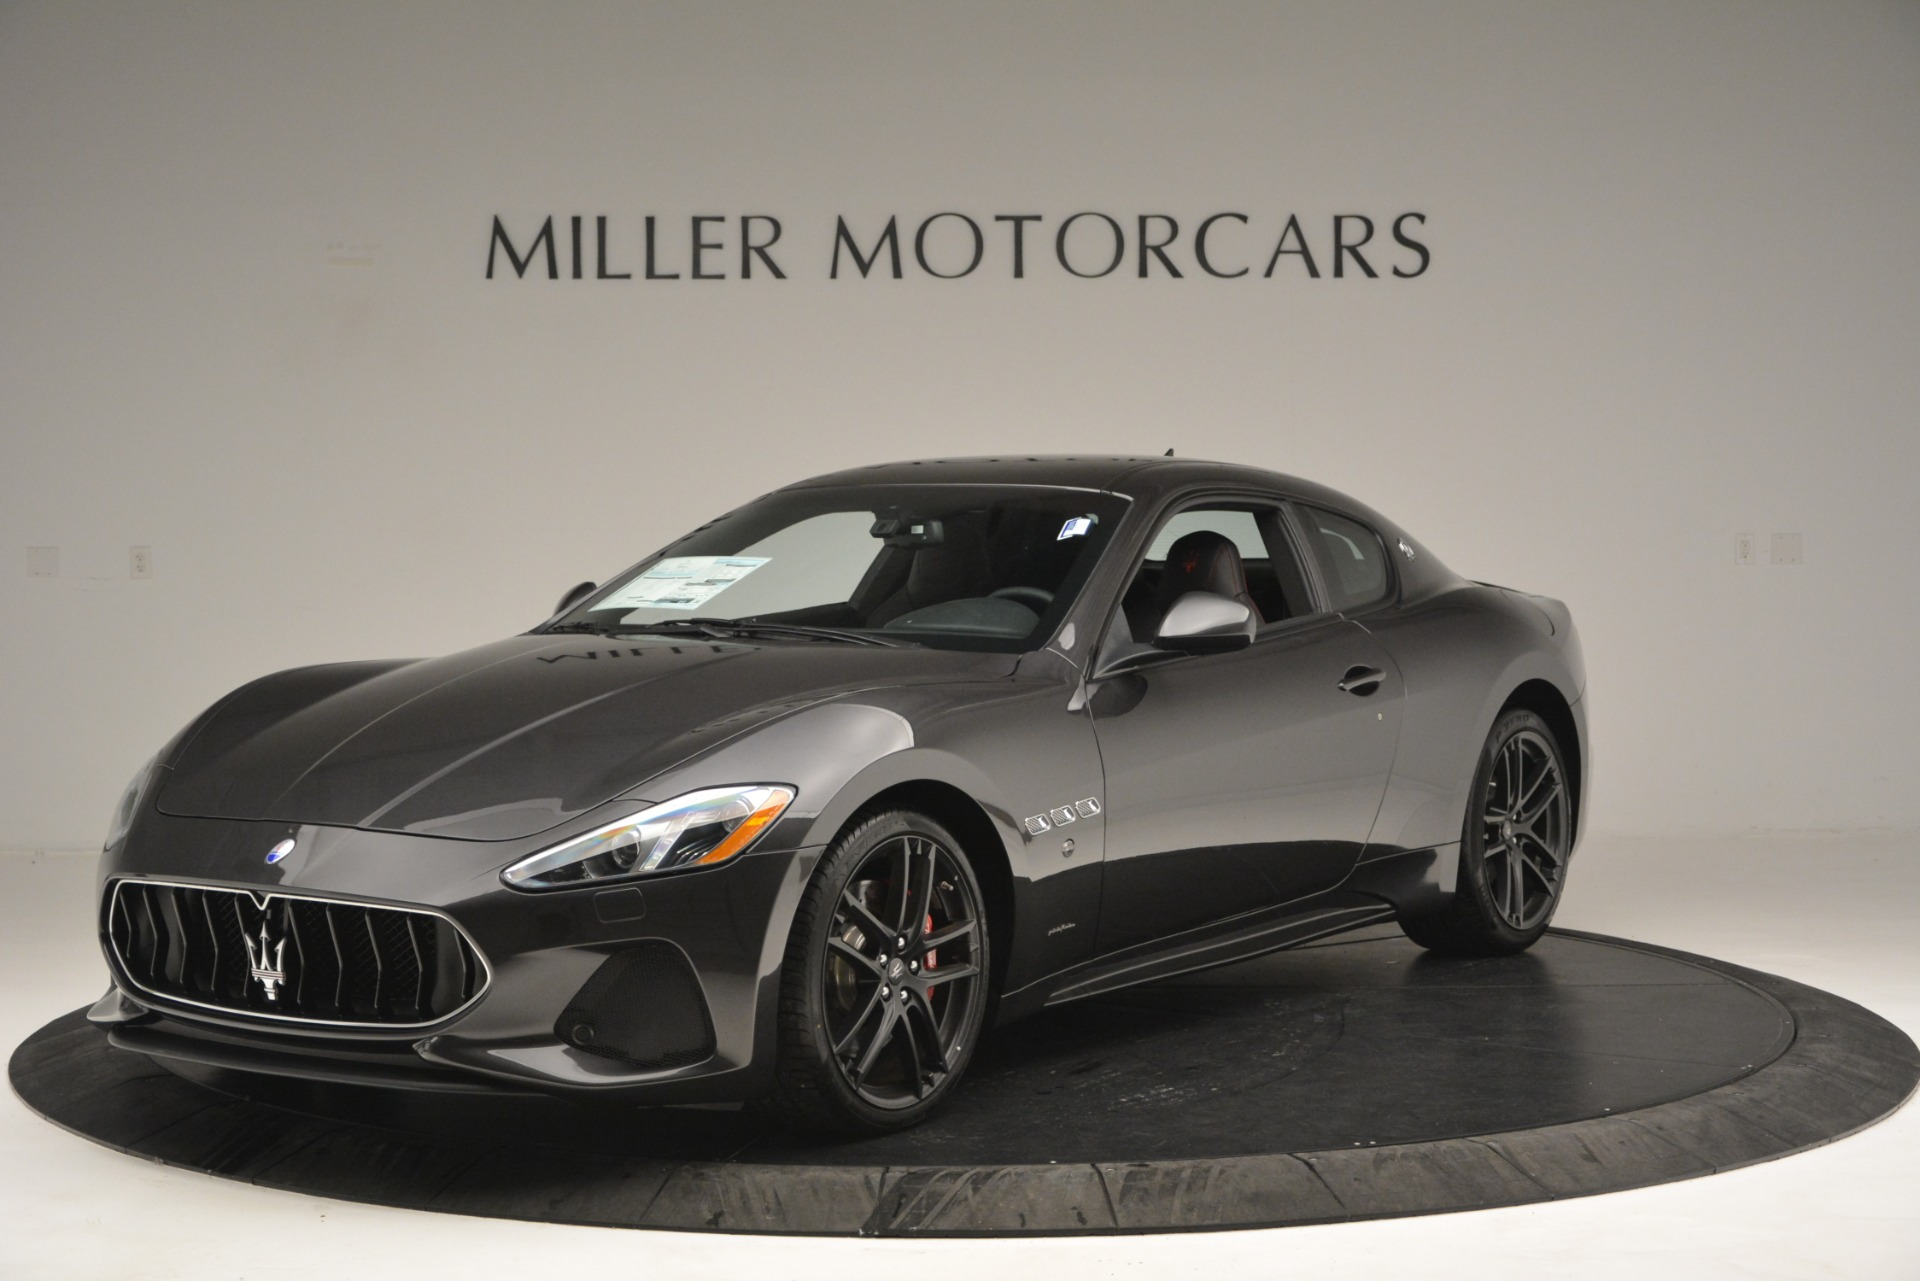 New 2018 Maserati GranTurismo Sport for sale Sold at Rolls-Royce Motor Cars Greenwich in Greenwich CT 06830 1